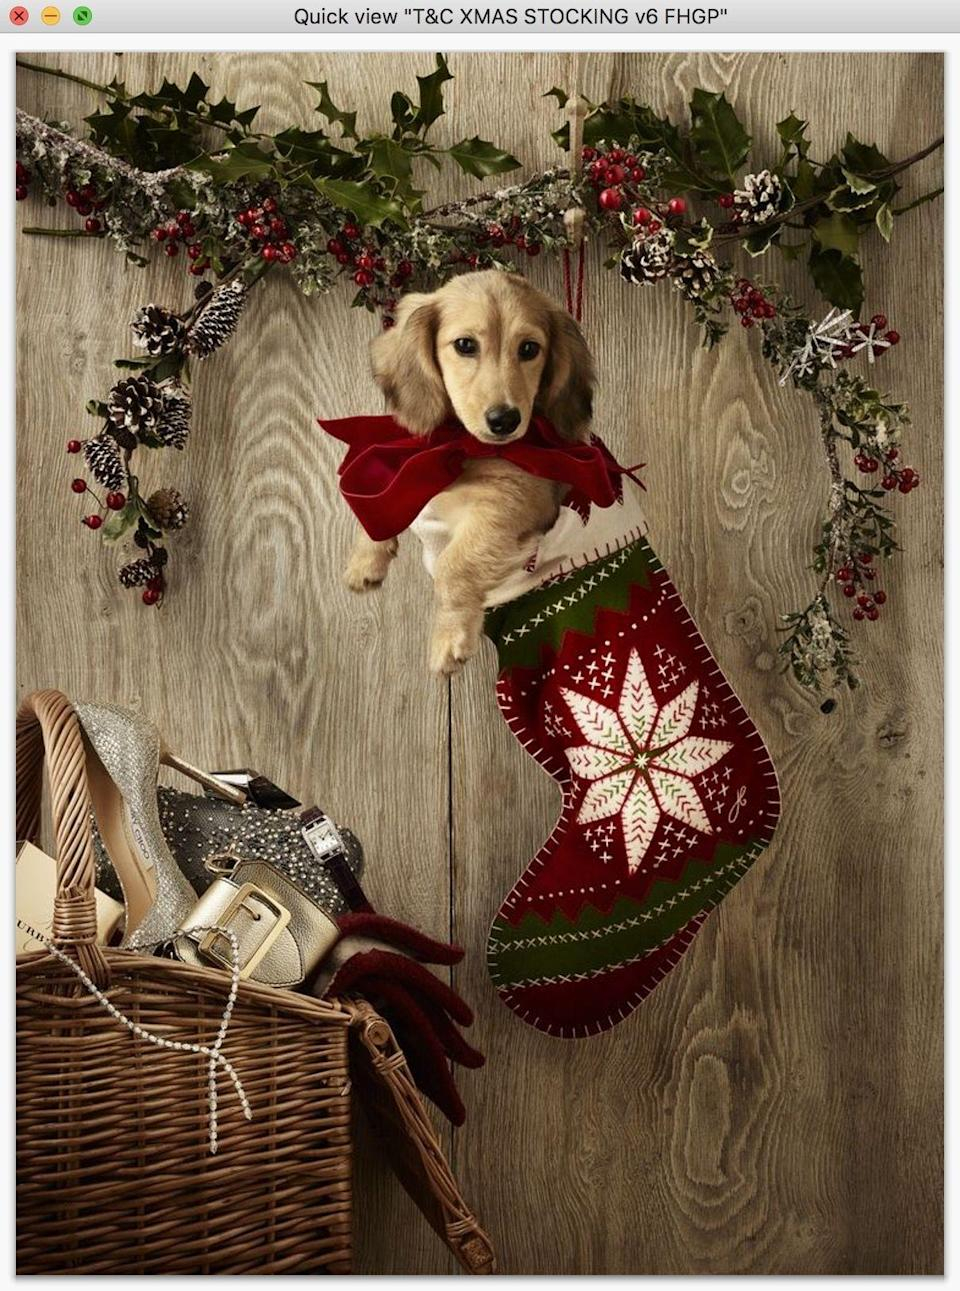 <p>'Tis the season to bestow gifts upon your beloved pets, whether pampered pooches or cosseted kittens. From a cosy new bed to a shiny new collar or some tasty treats, here are some of our favourite ways to show your four-legged companion some love this Christmas.</p>